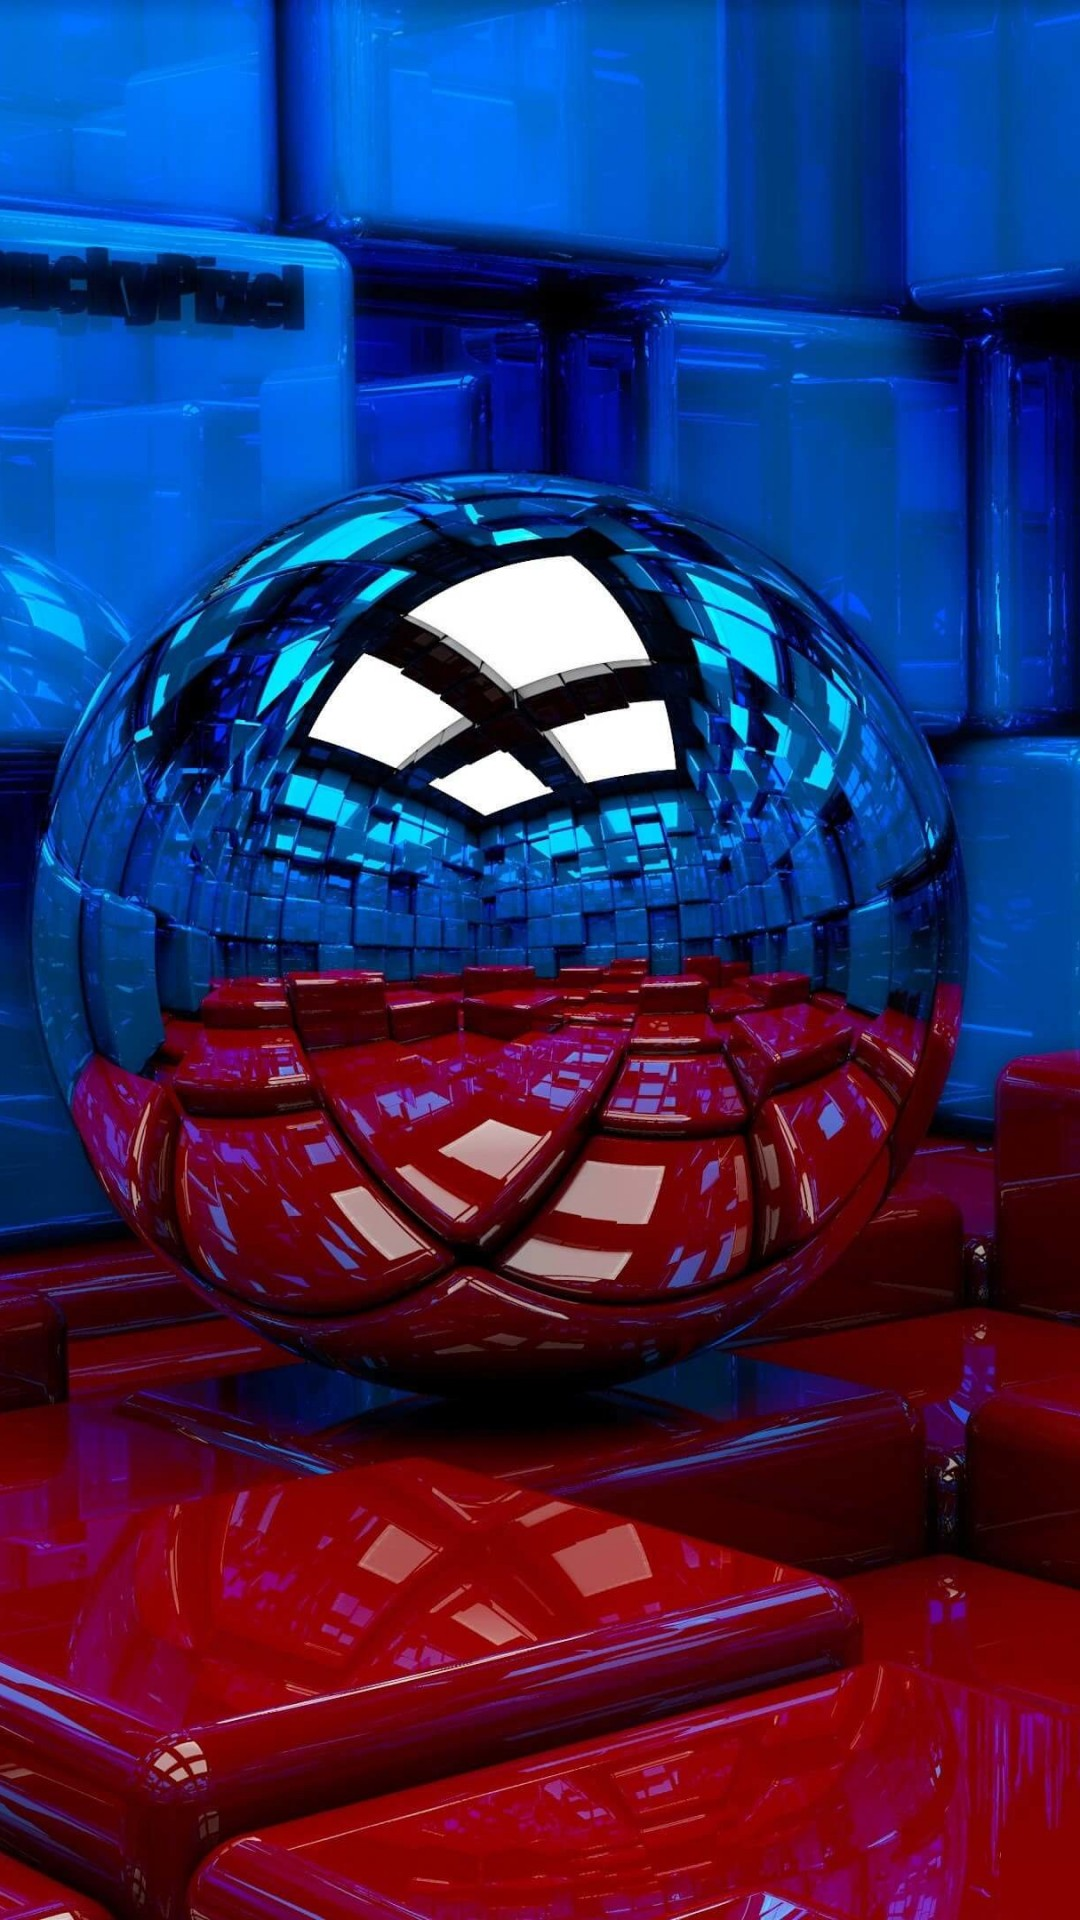 Metallic Sphere Reflecting The Cube Room Wallpaper for SAMSUNG Galaxy Note 3